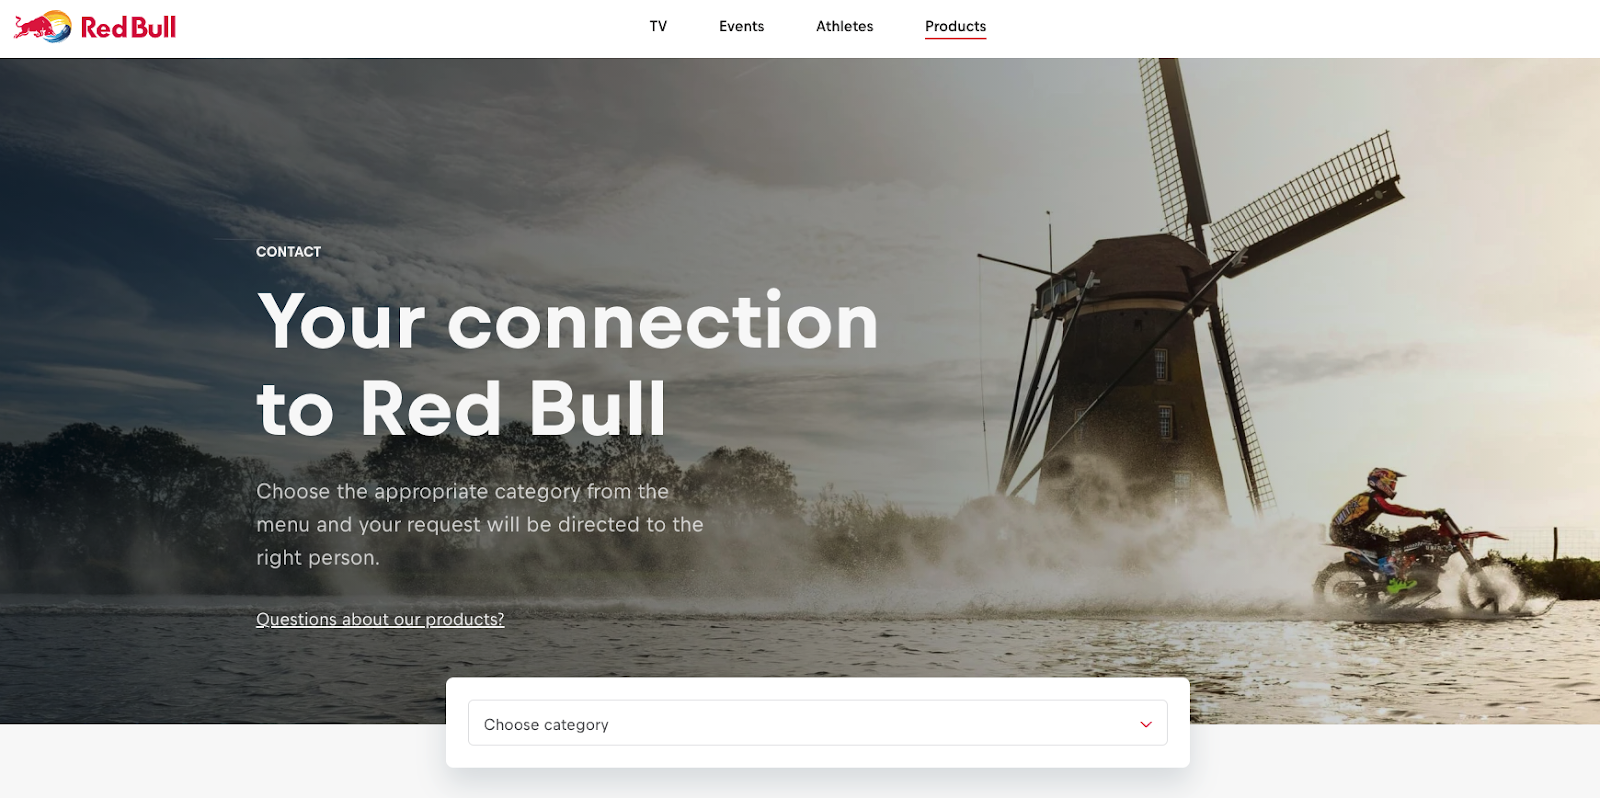 Red Bull Contact Page